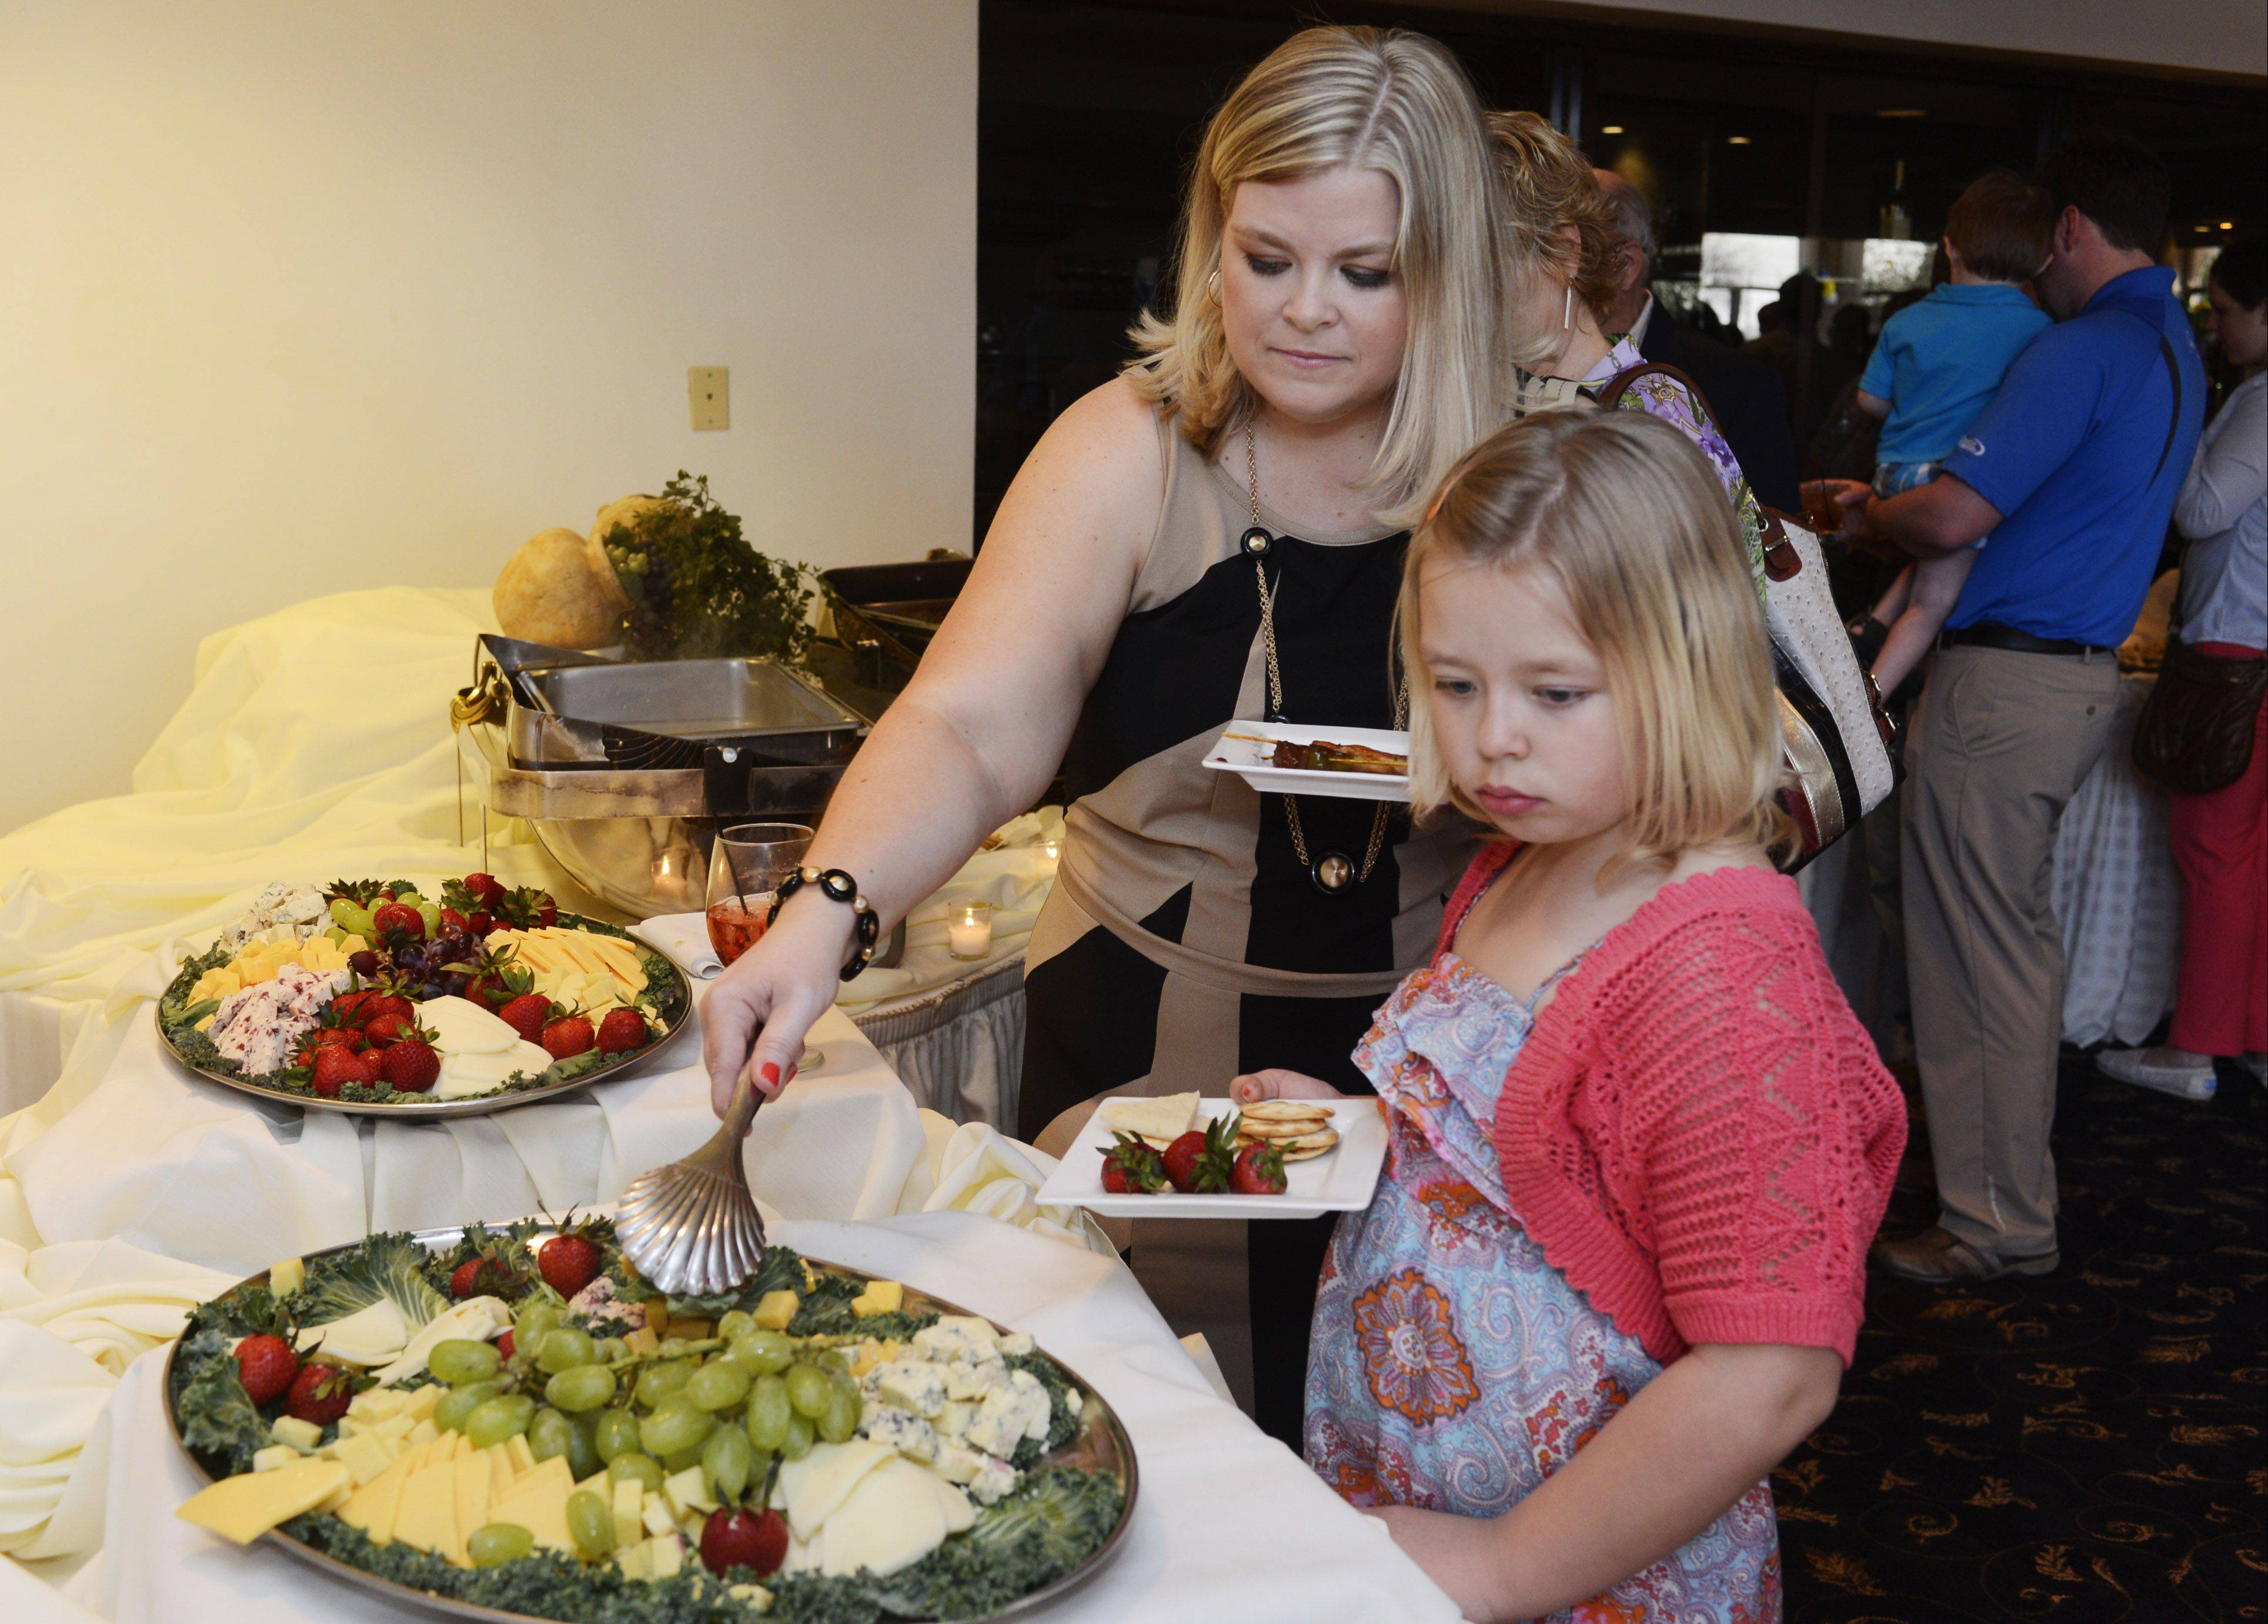 Contestant Megan McCarthy-Cook and her daughter, Molly, 8, select items from the buffet during the Fittest Loser celebration at Victoria in the Park in Mount Prospect.